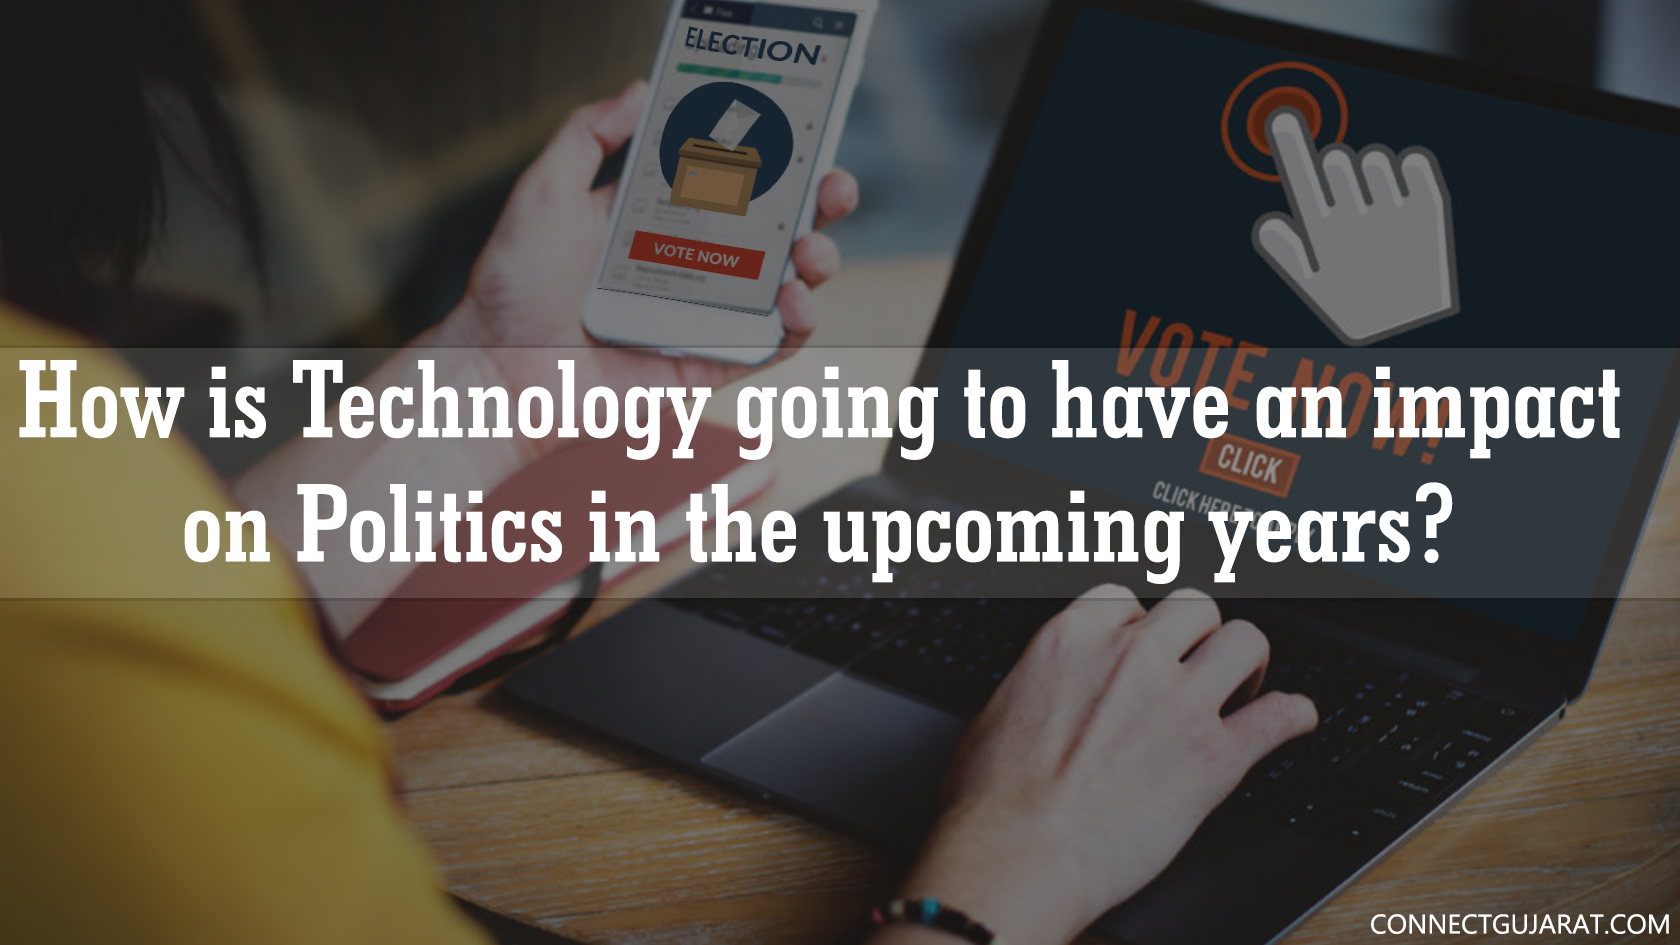 How is technology going to have an impact on Politics in the upcoming years?